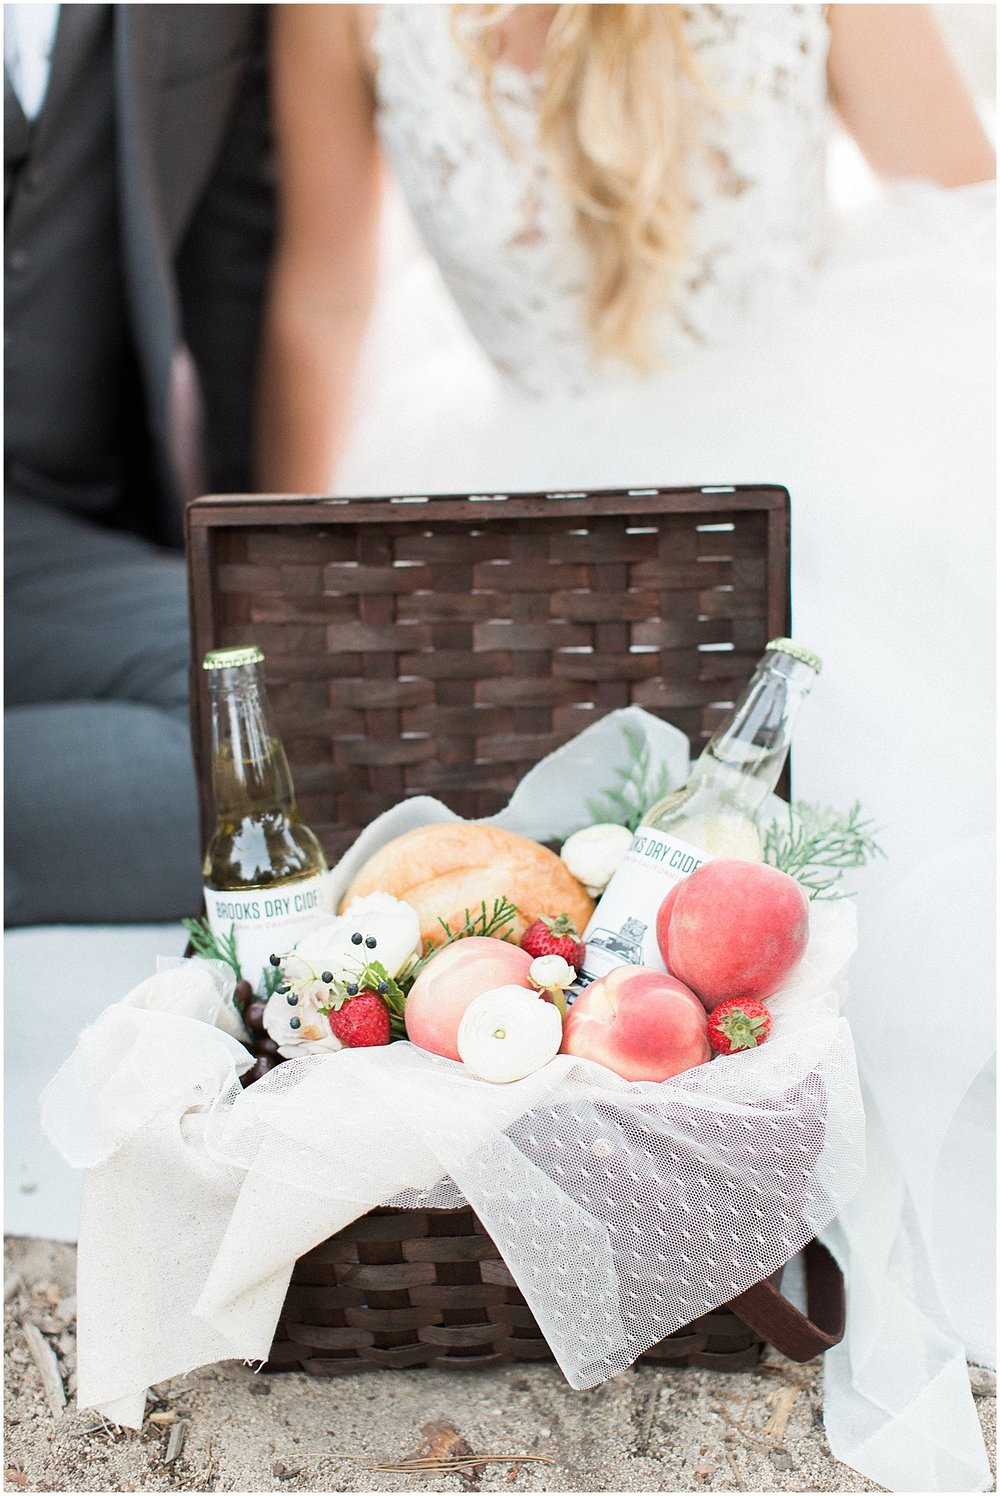 Custom Picnic Basket by Gaspara Flora featured on Style Me Pretty | Scottsdale Wedding Planner | Megan Dileen Events